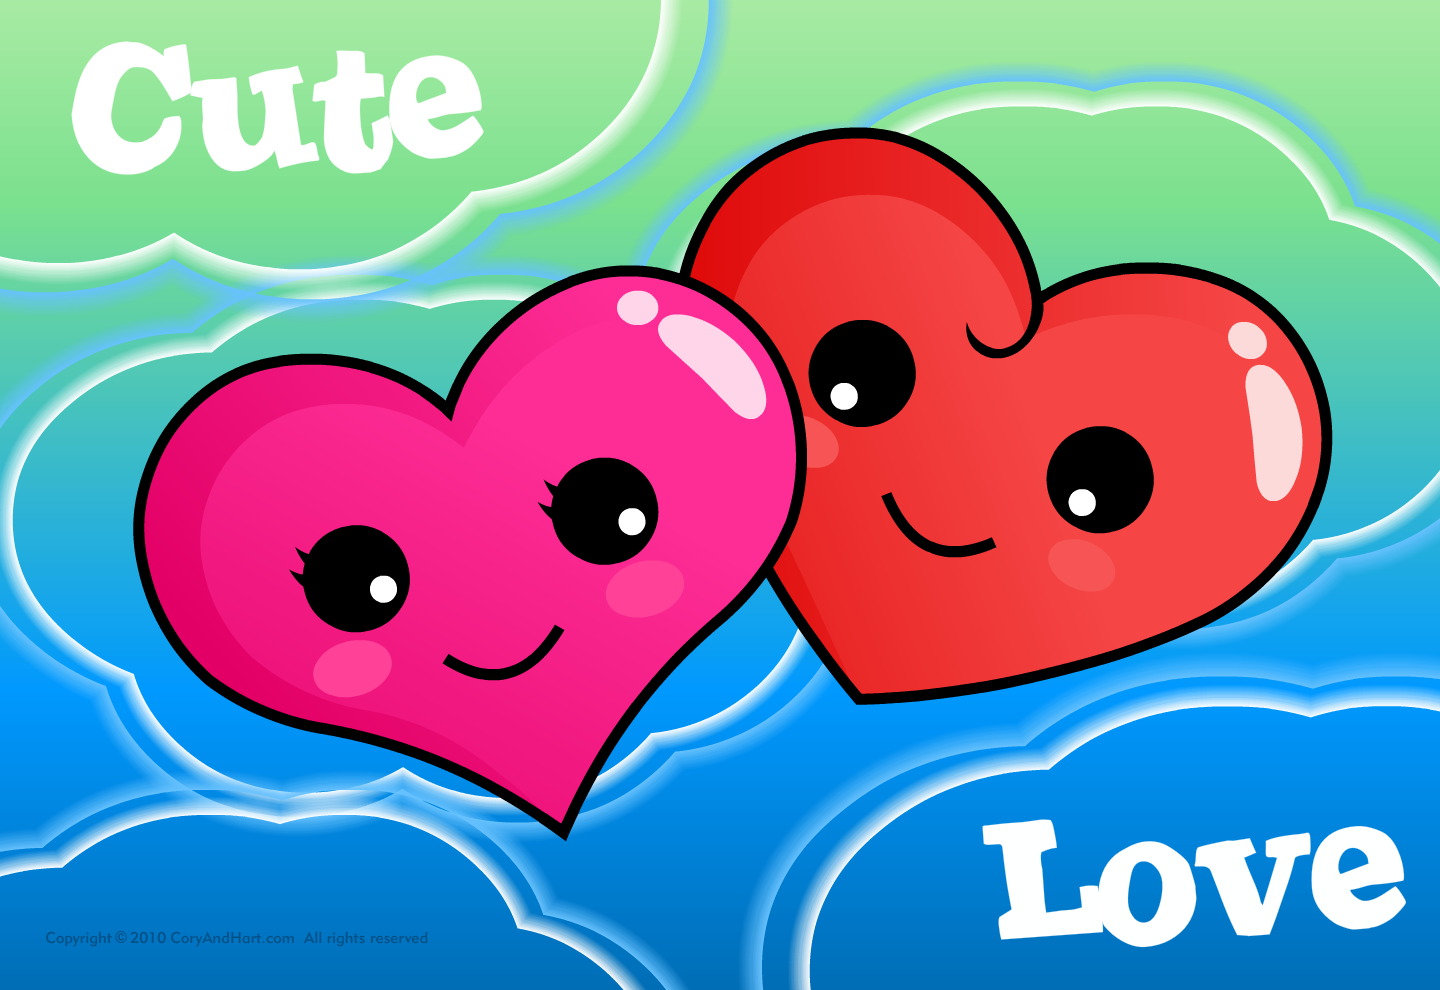 cute Love Wallpaper Tumblr : Miracle Of Love: Love Wallpaper